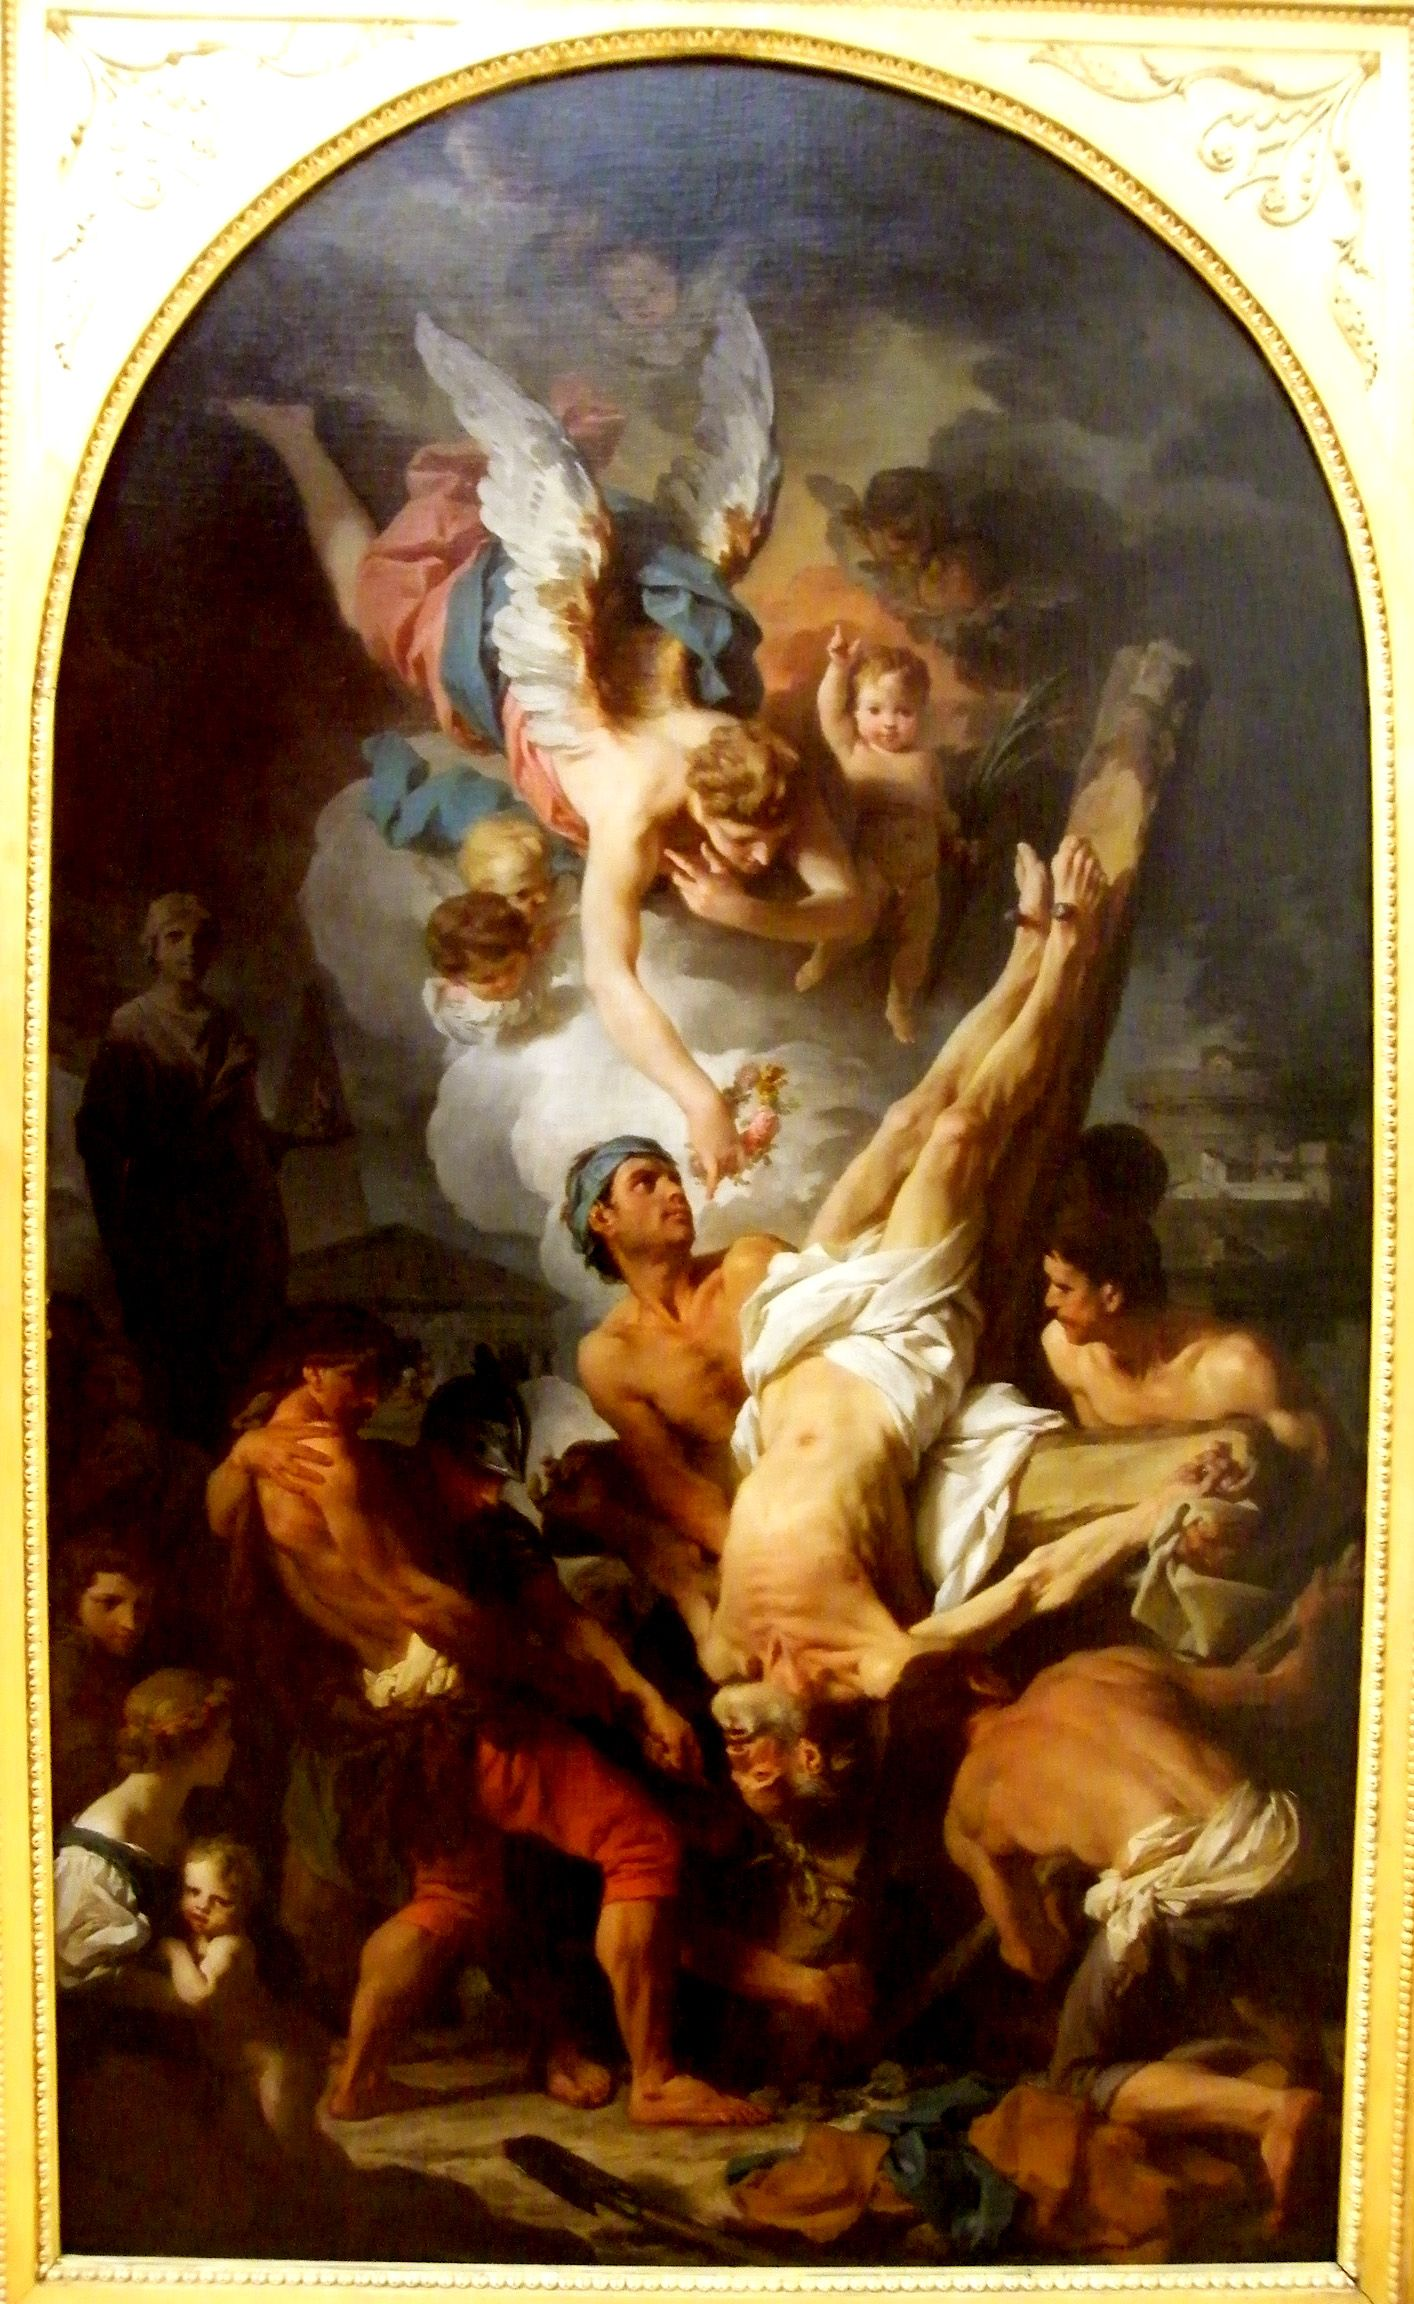 Kds Photo Leipzig Bildenen Kunste Museum Painting By Pierre Subleyras The Crucifixion Of Saint Peter Early 1700s In 2020 Painting Baroque Art Angel Art